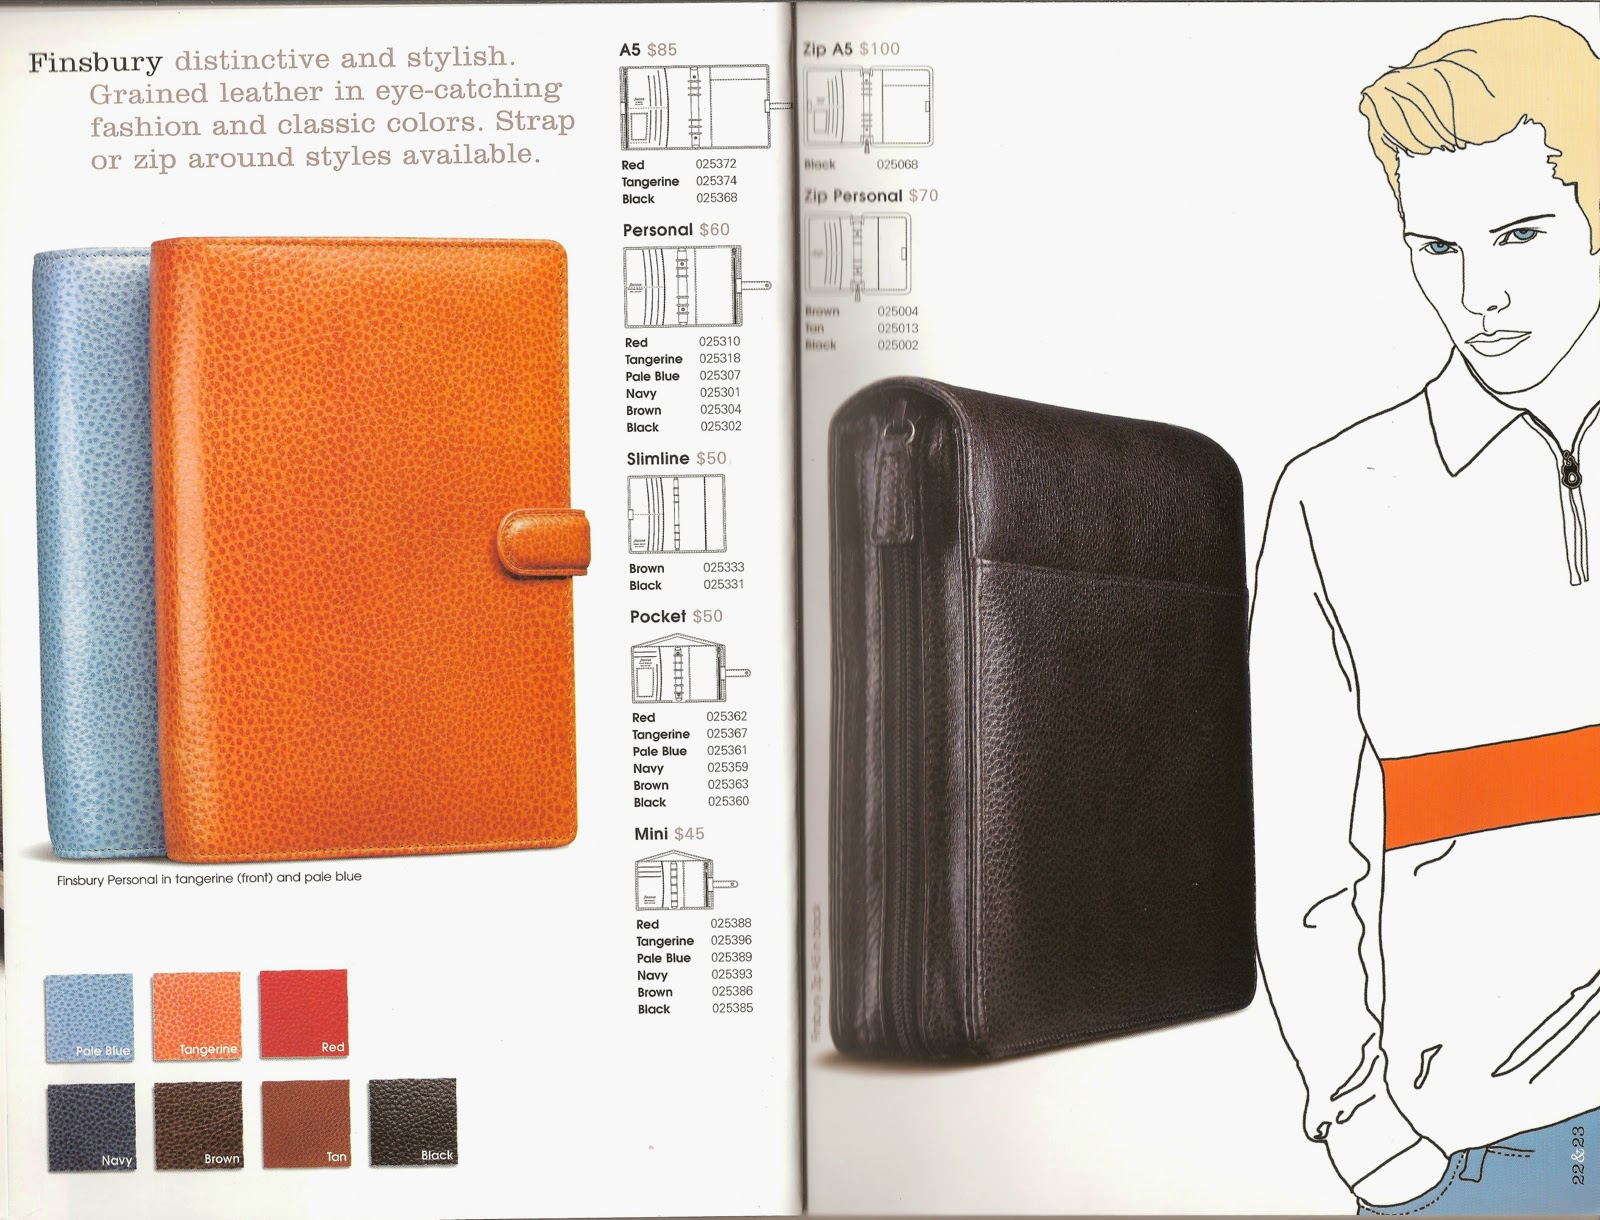 A Chronology of Filofax 3 and much of its British-based production was cut - high quality binders made in Eng-land from leathers and exotic materials were dropped to be replaced by cheaply made.